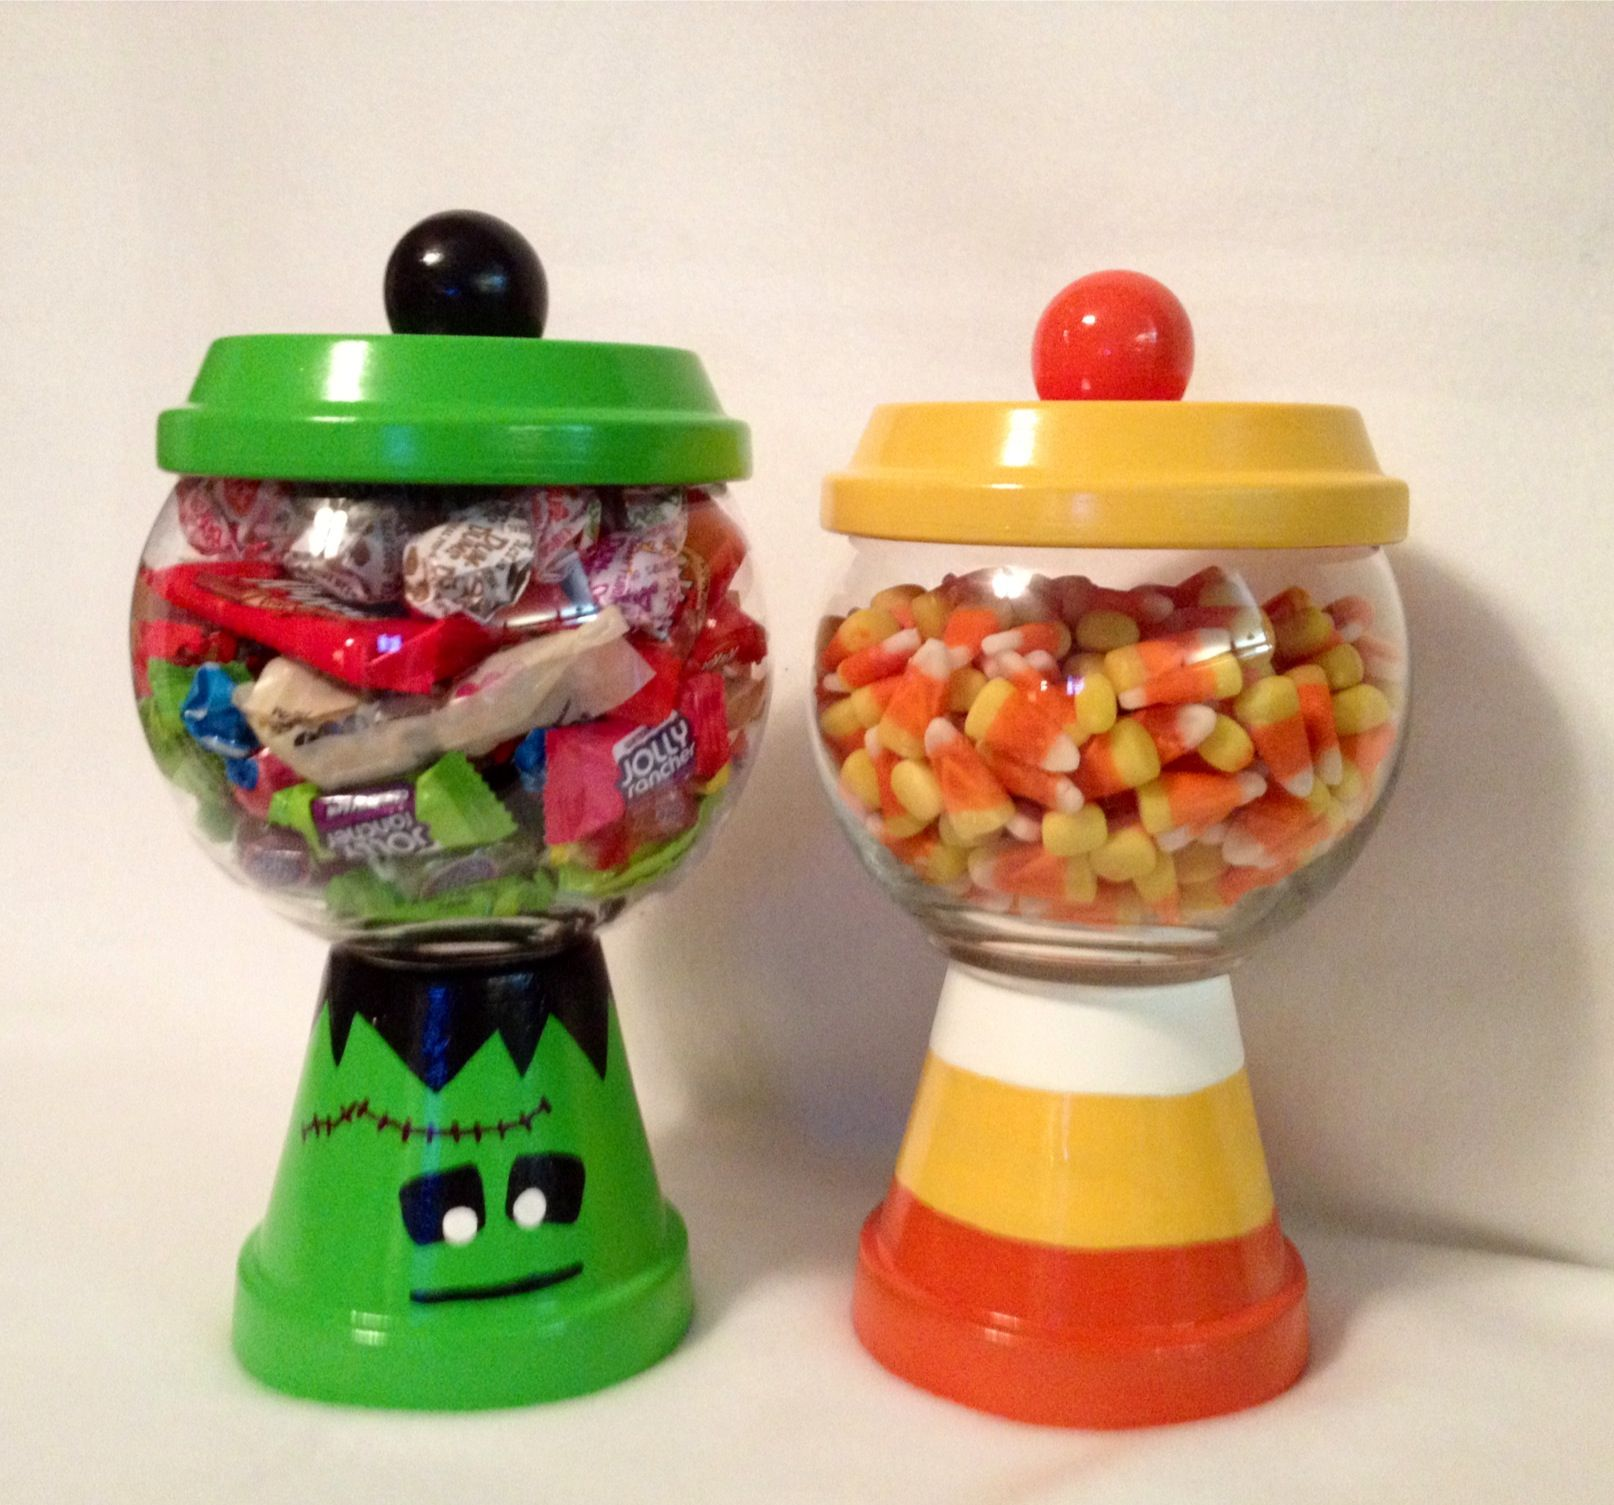 Pin By Mindy Sam Walker On Made By Me Clay Pot Crafts Bubble Gum Machine Halloween Candy Jar